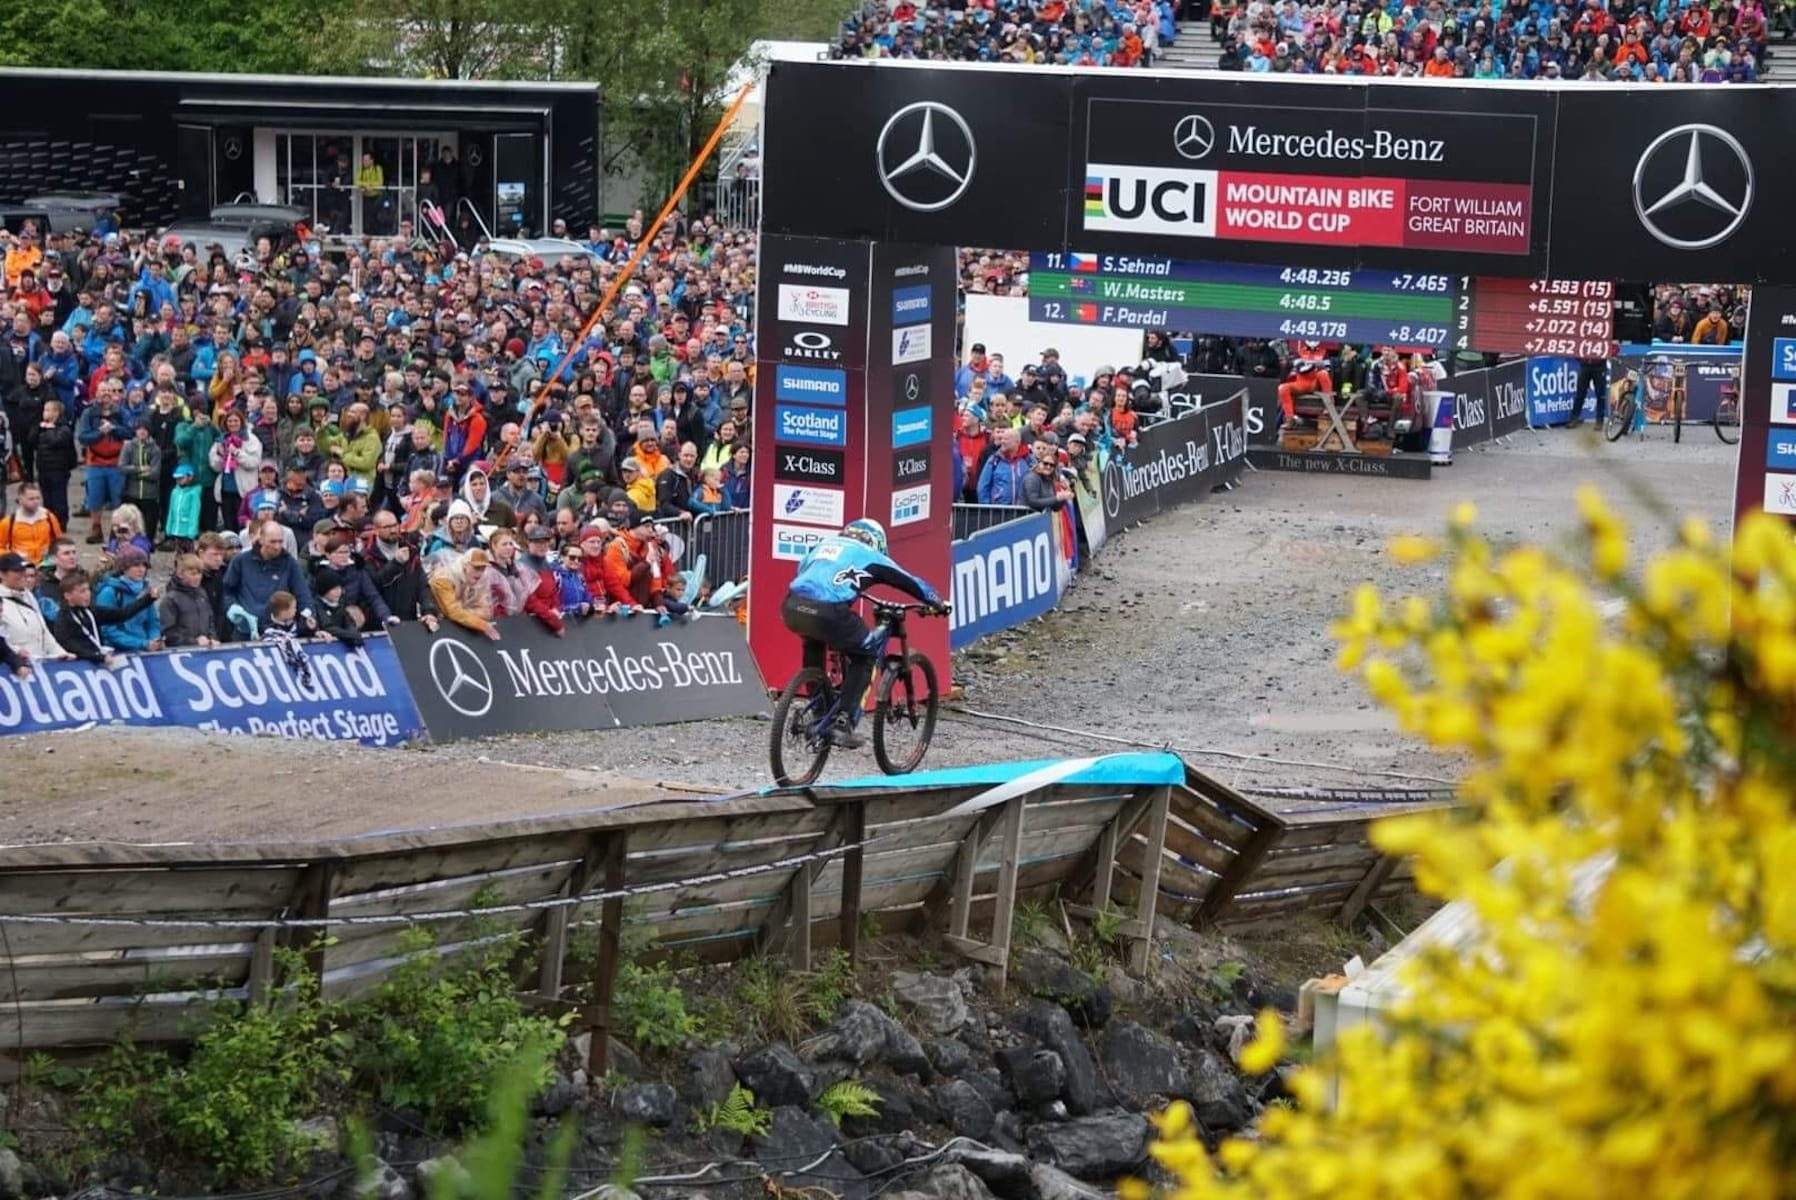 2019 fort william world cup crowd downhill race